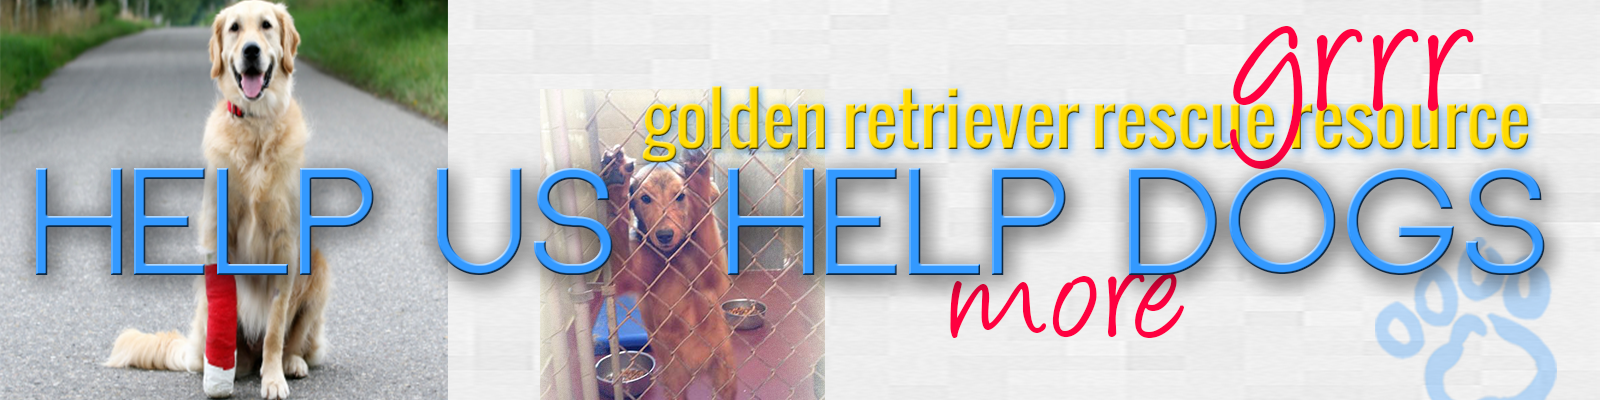 Help Us Help More Golden Retriever Dogs, Donate header